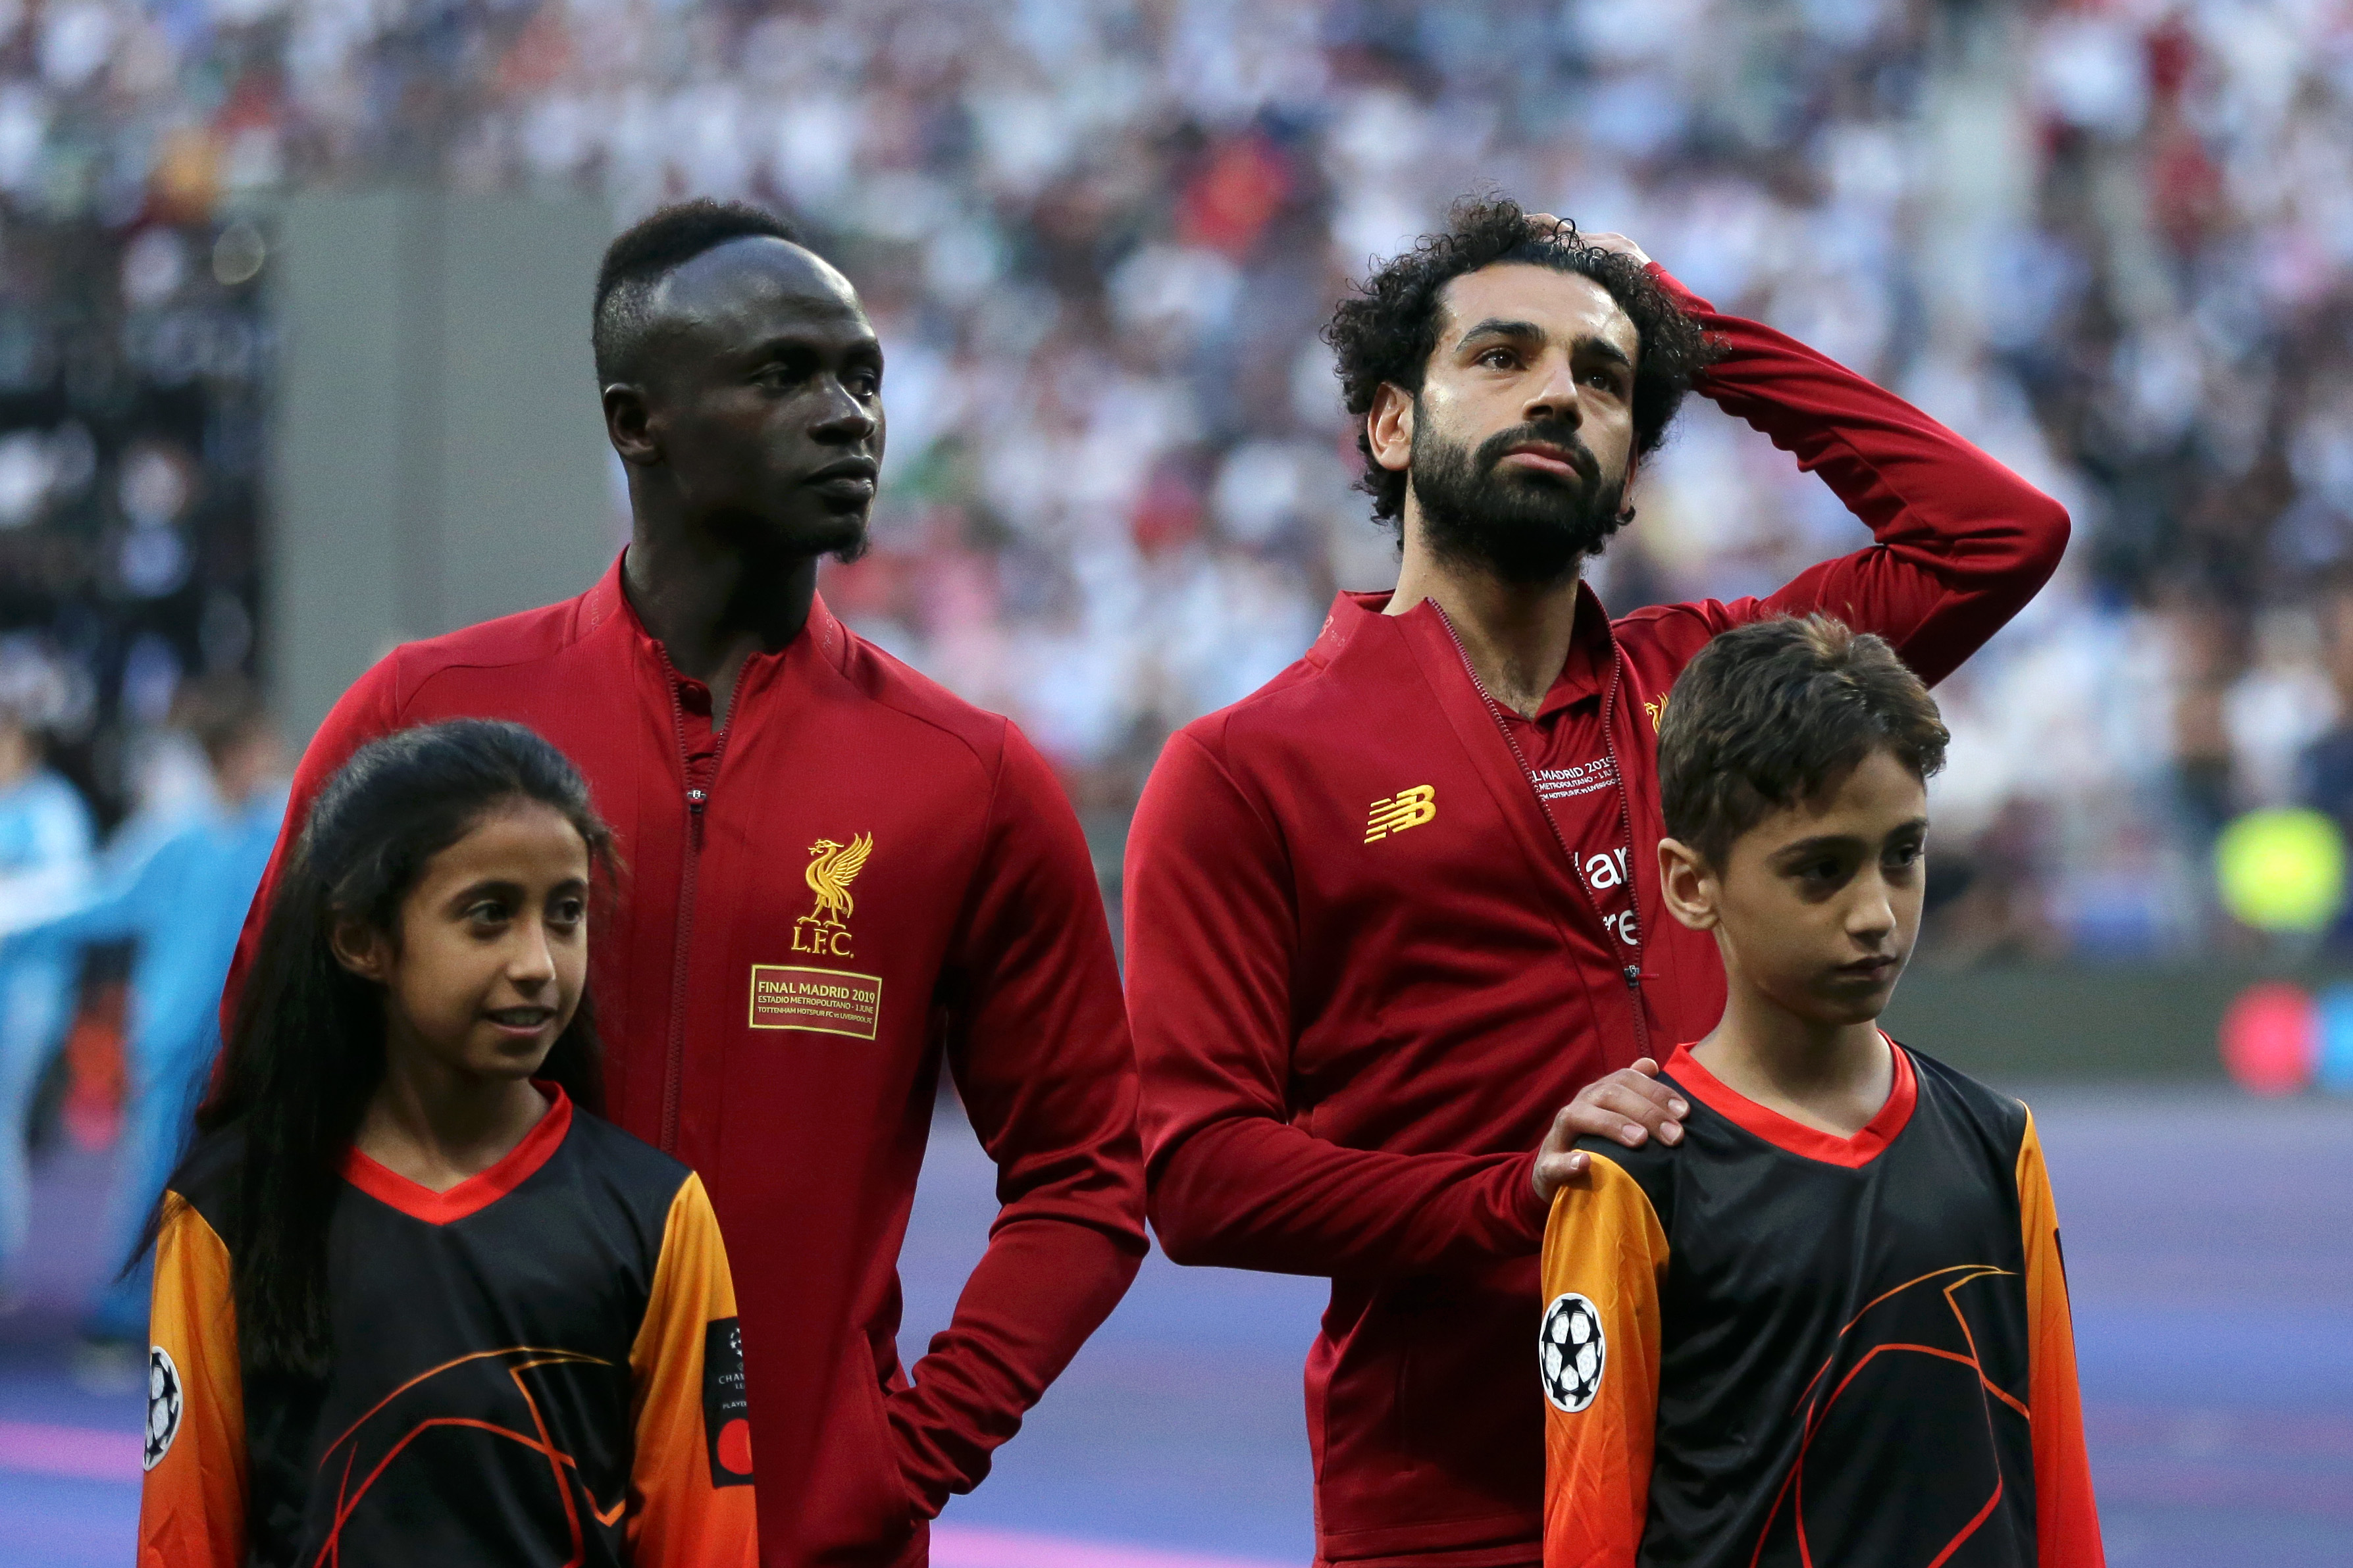 MADRID, SPAIN - JUNE 01:  Sadio Mane and Mohamed Salah of Liverpool look on prior to the UEFA Champions League Final between Tottenham Hotspur and Liverpool at Estadio Wanda Metropolitano on June 01, 2019 in Madrid, Spain. (Photo by Gonzalo Arroyo - UEFA/UEFA via Getty Images)